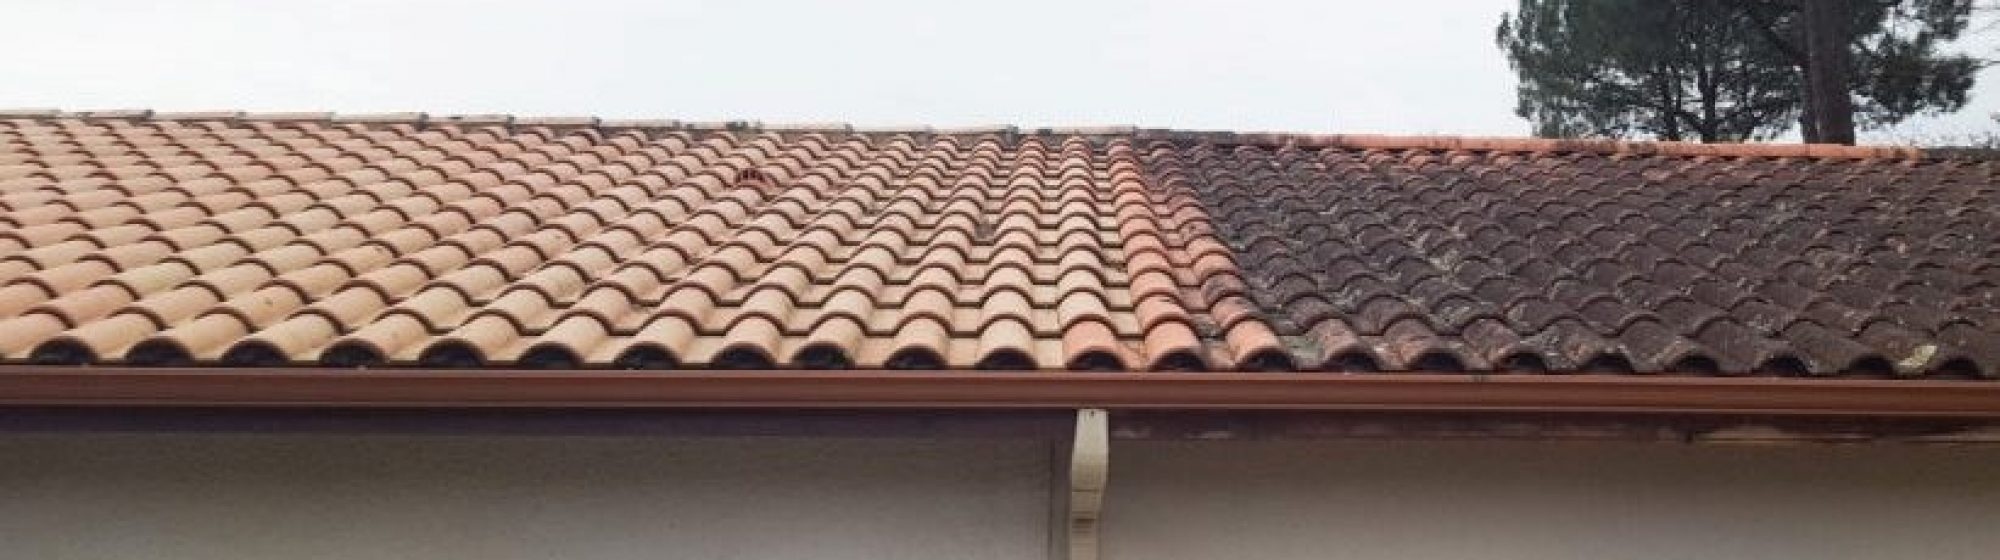 Roof cleaning Glastonbury, Yeovil, Somerton,